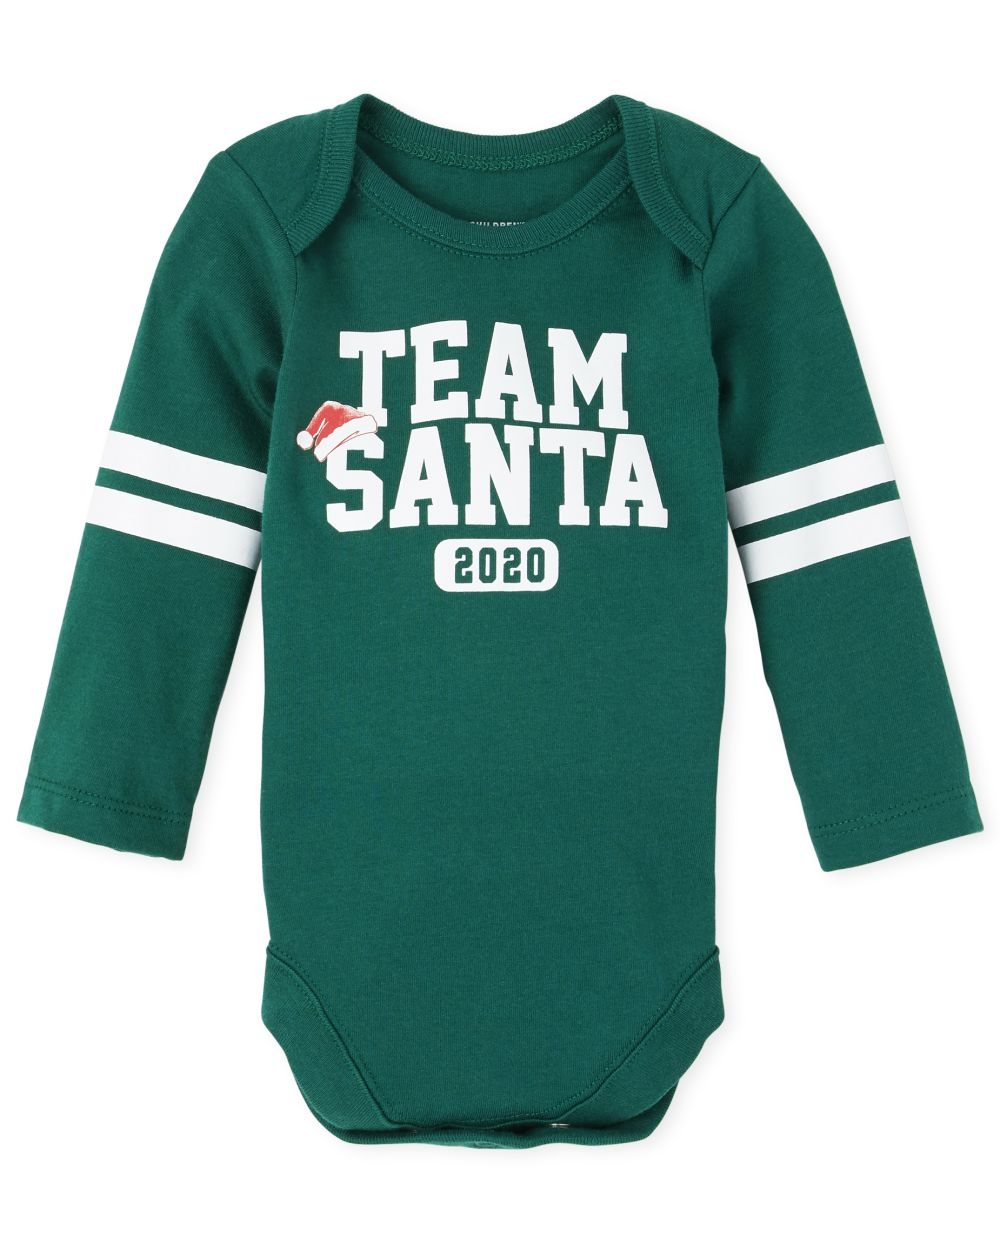 Unisex Baby Matching Family Christmas Team Santa Graphic Bodysuit